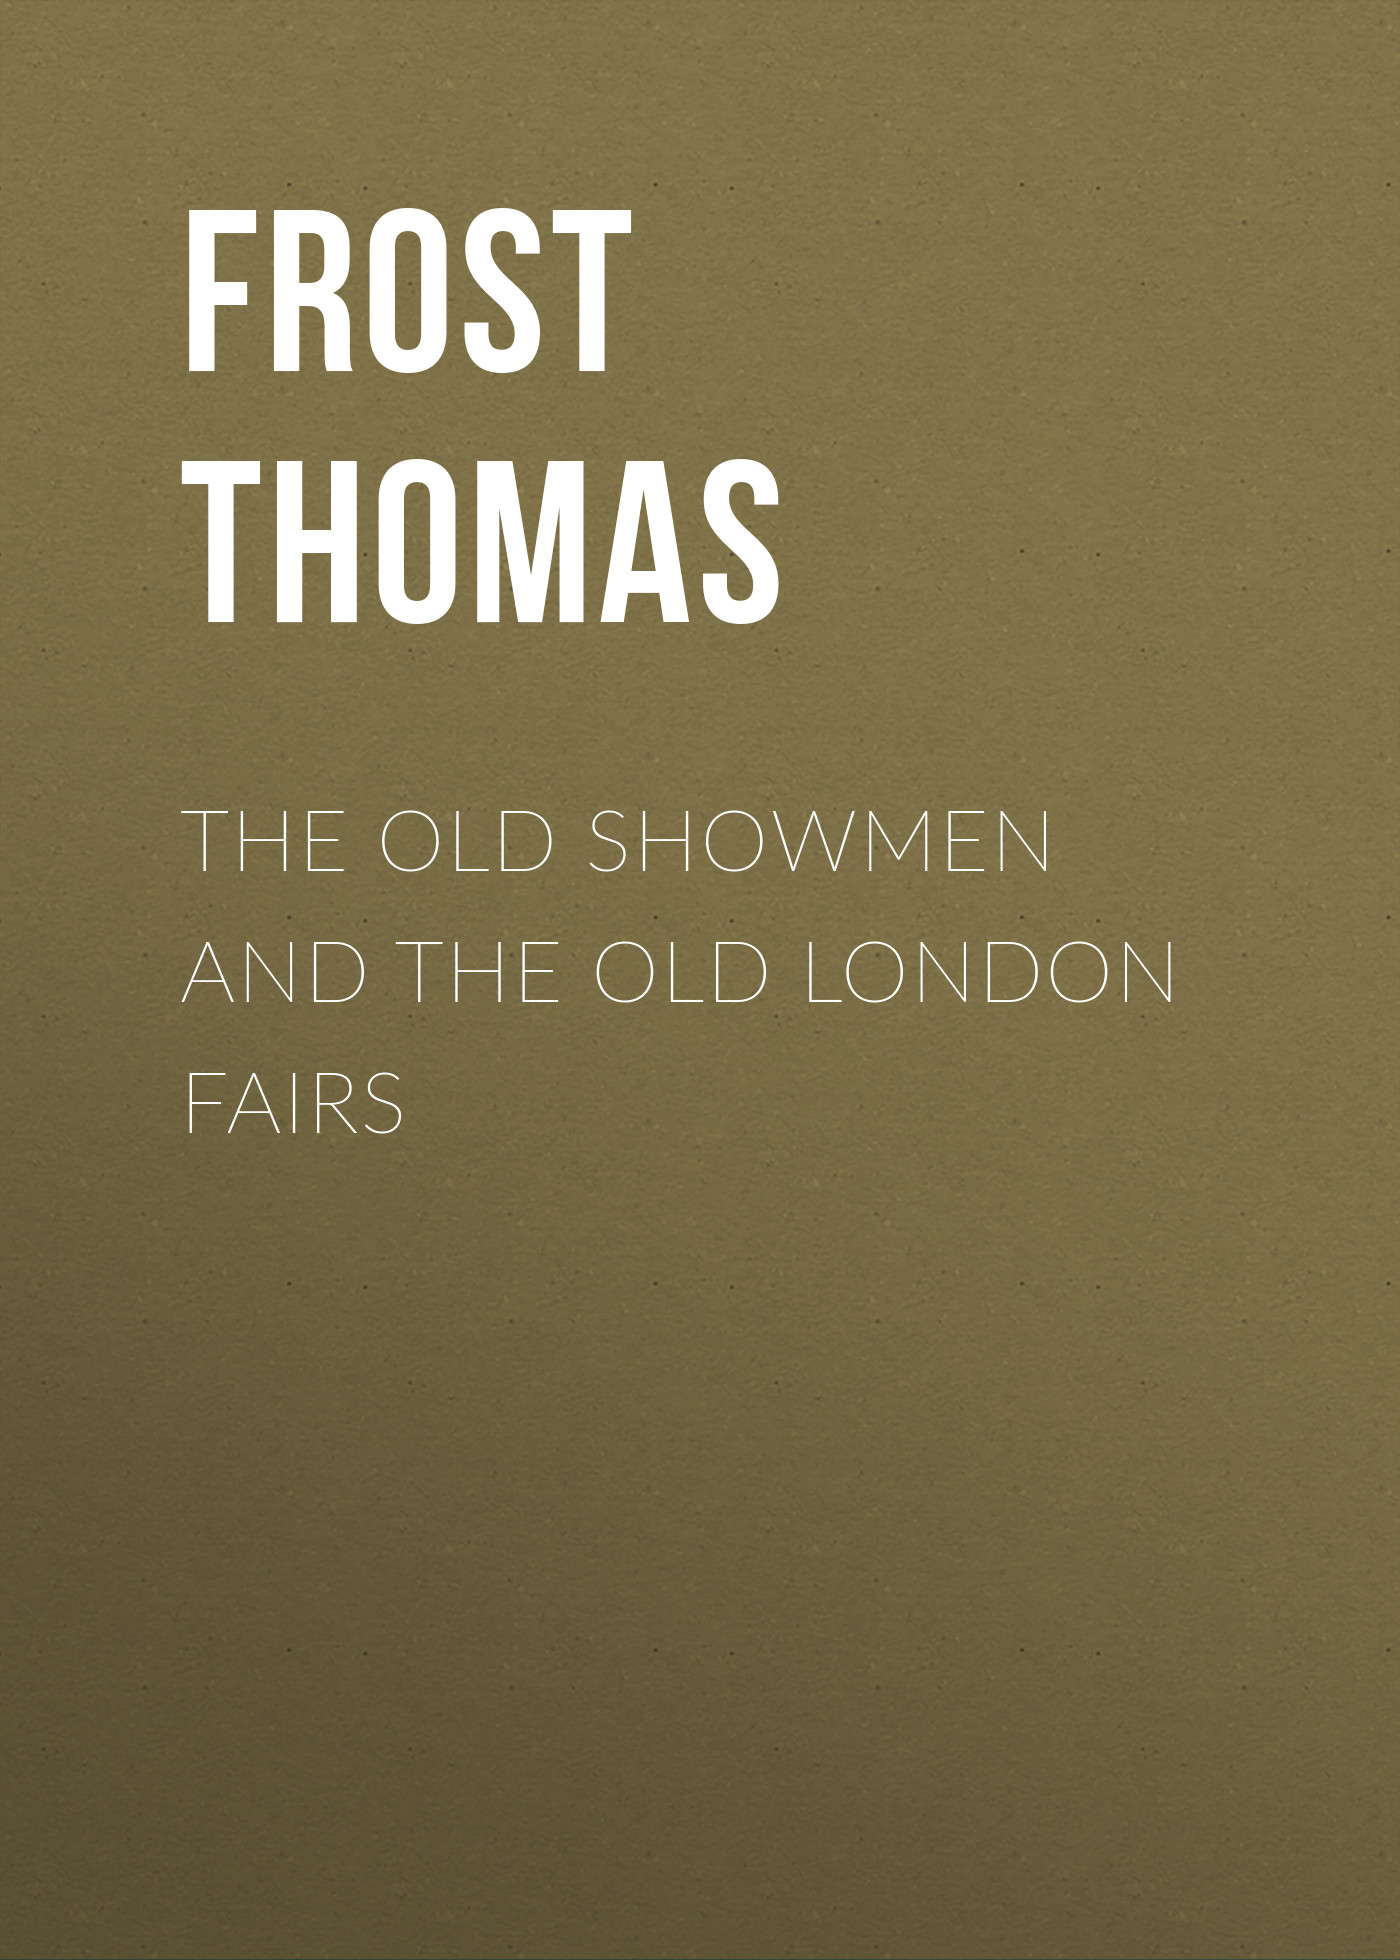 Frost Thomas The Old Showmen and the Old London Fairs